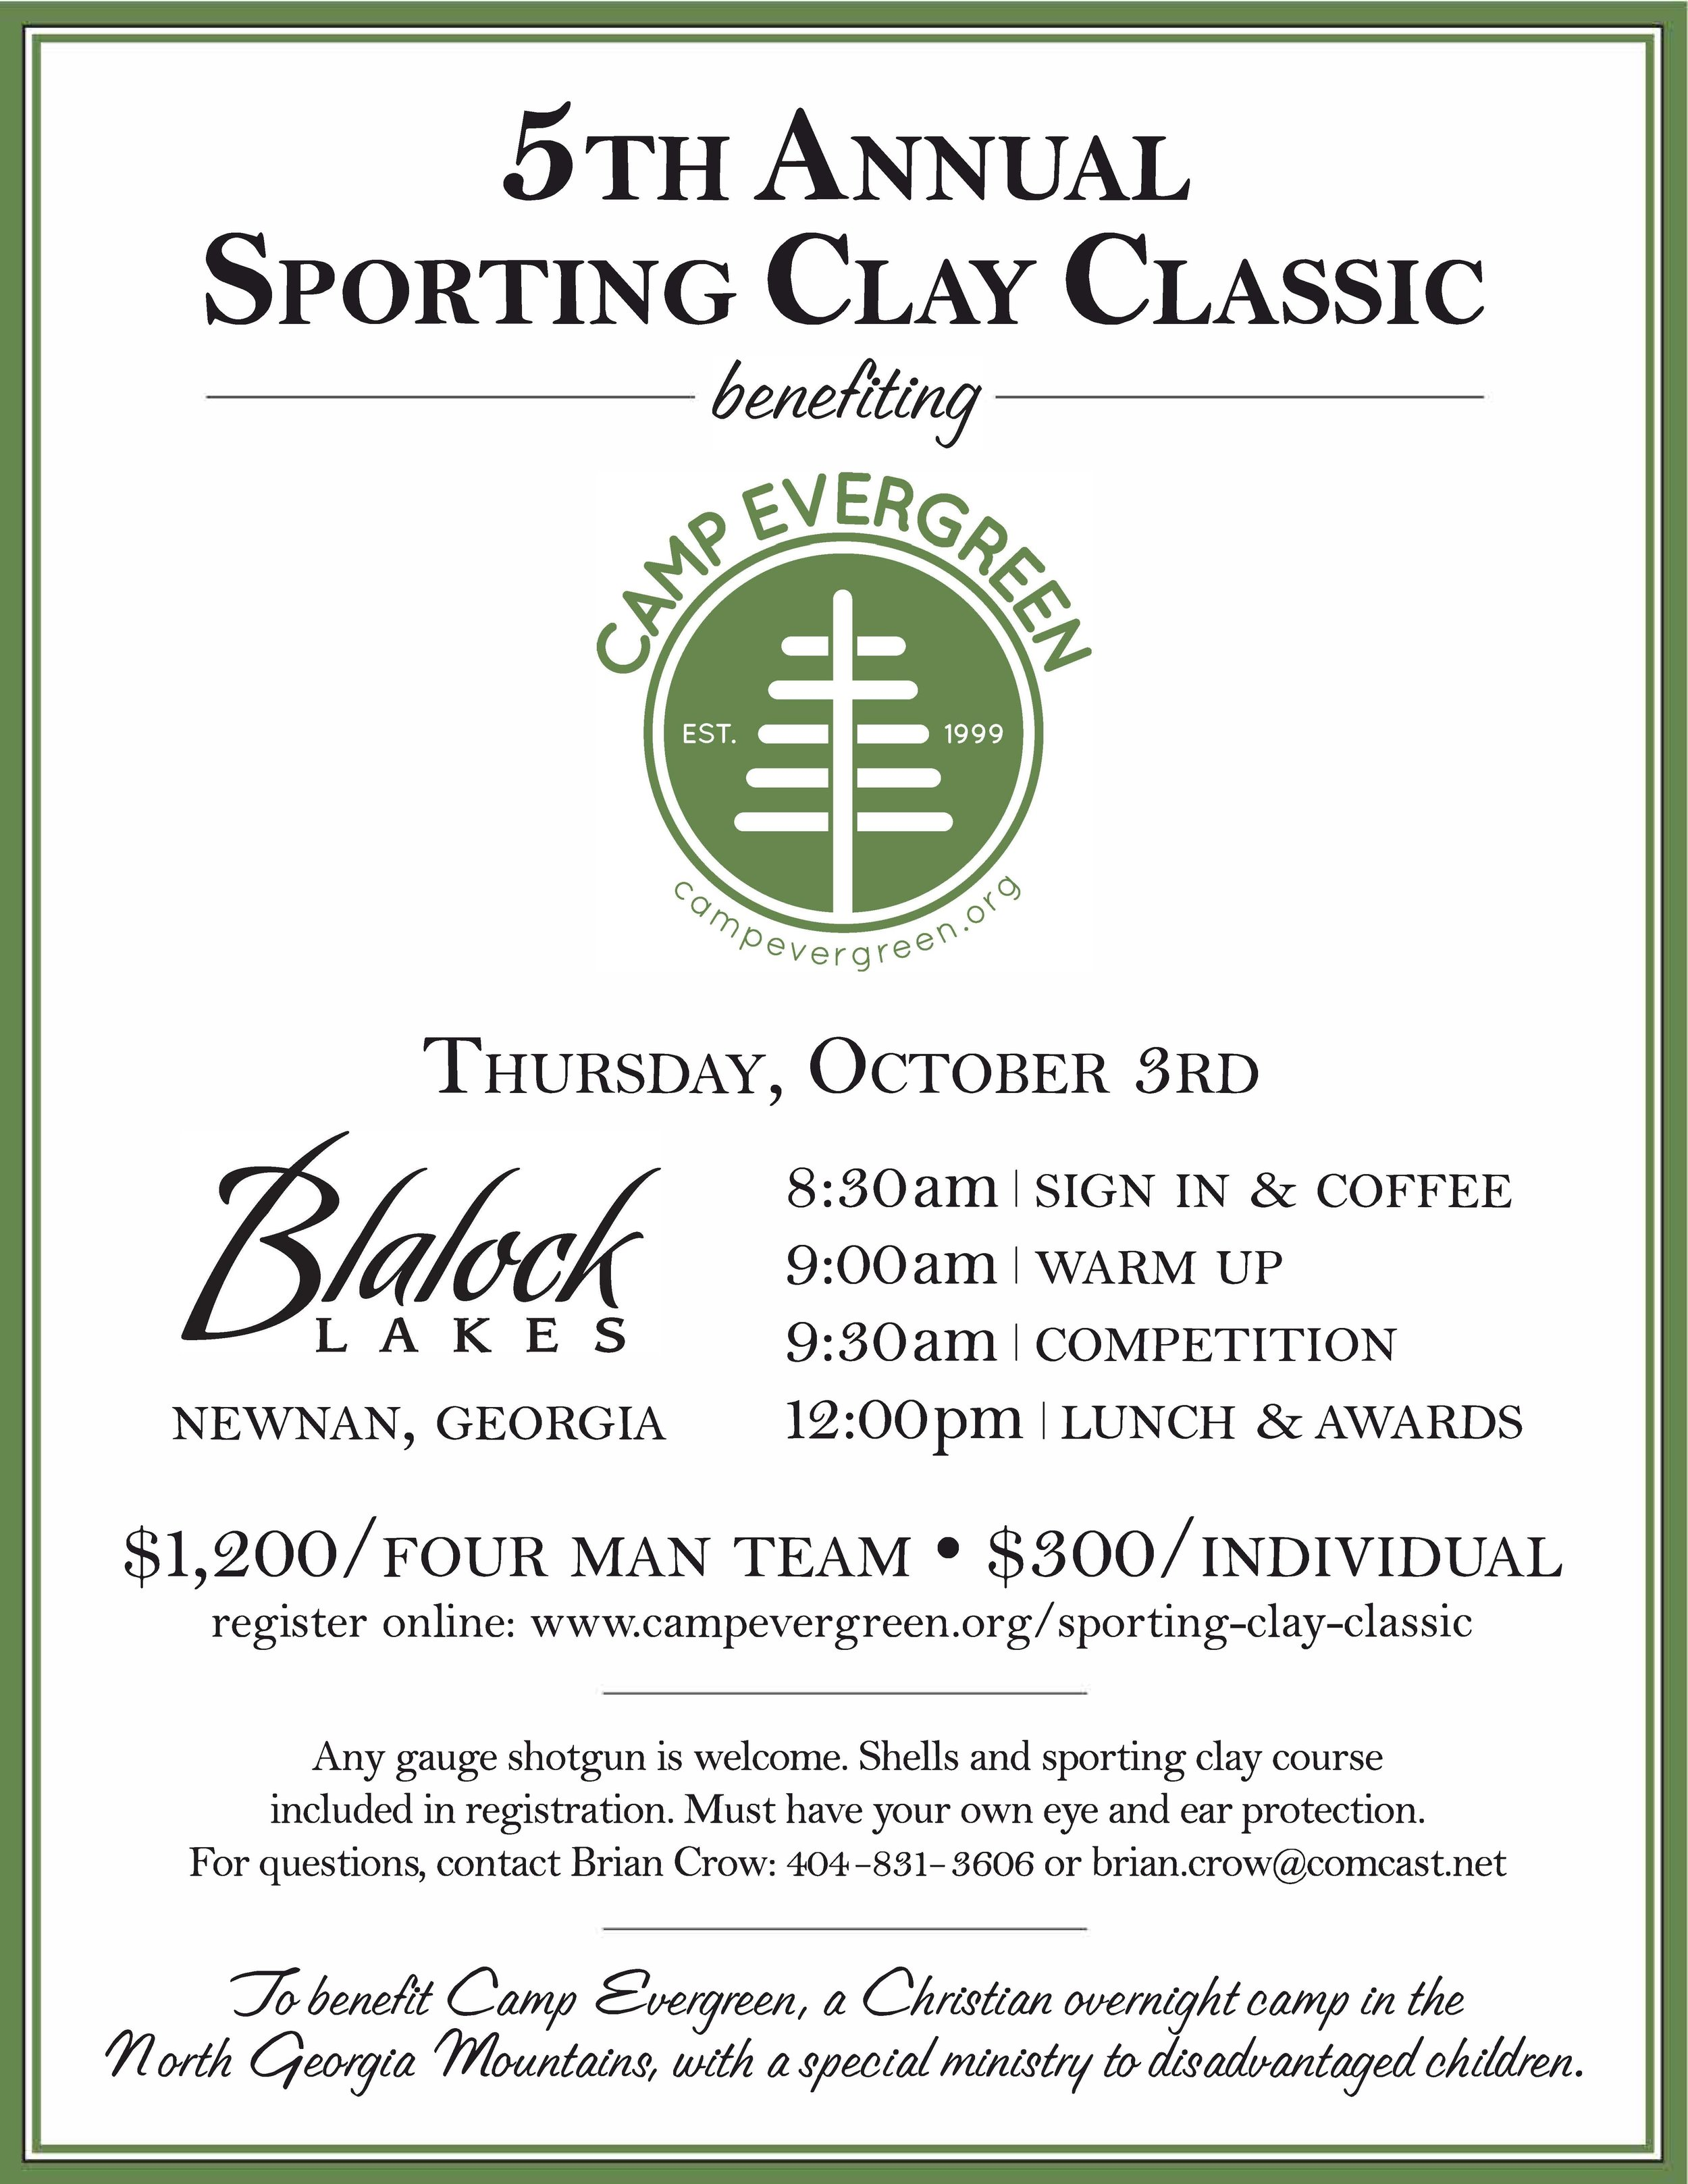 flier.5th camp evergreen sporting clay classic.jpg